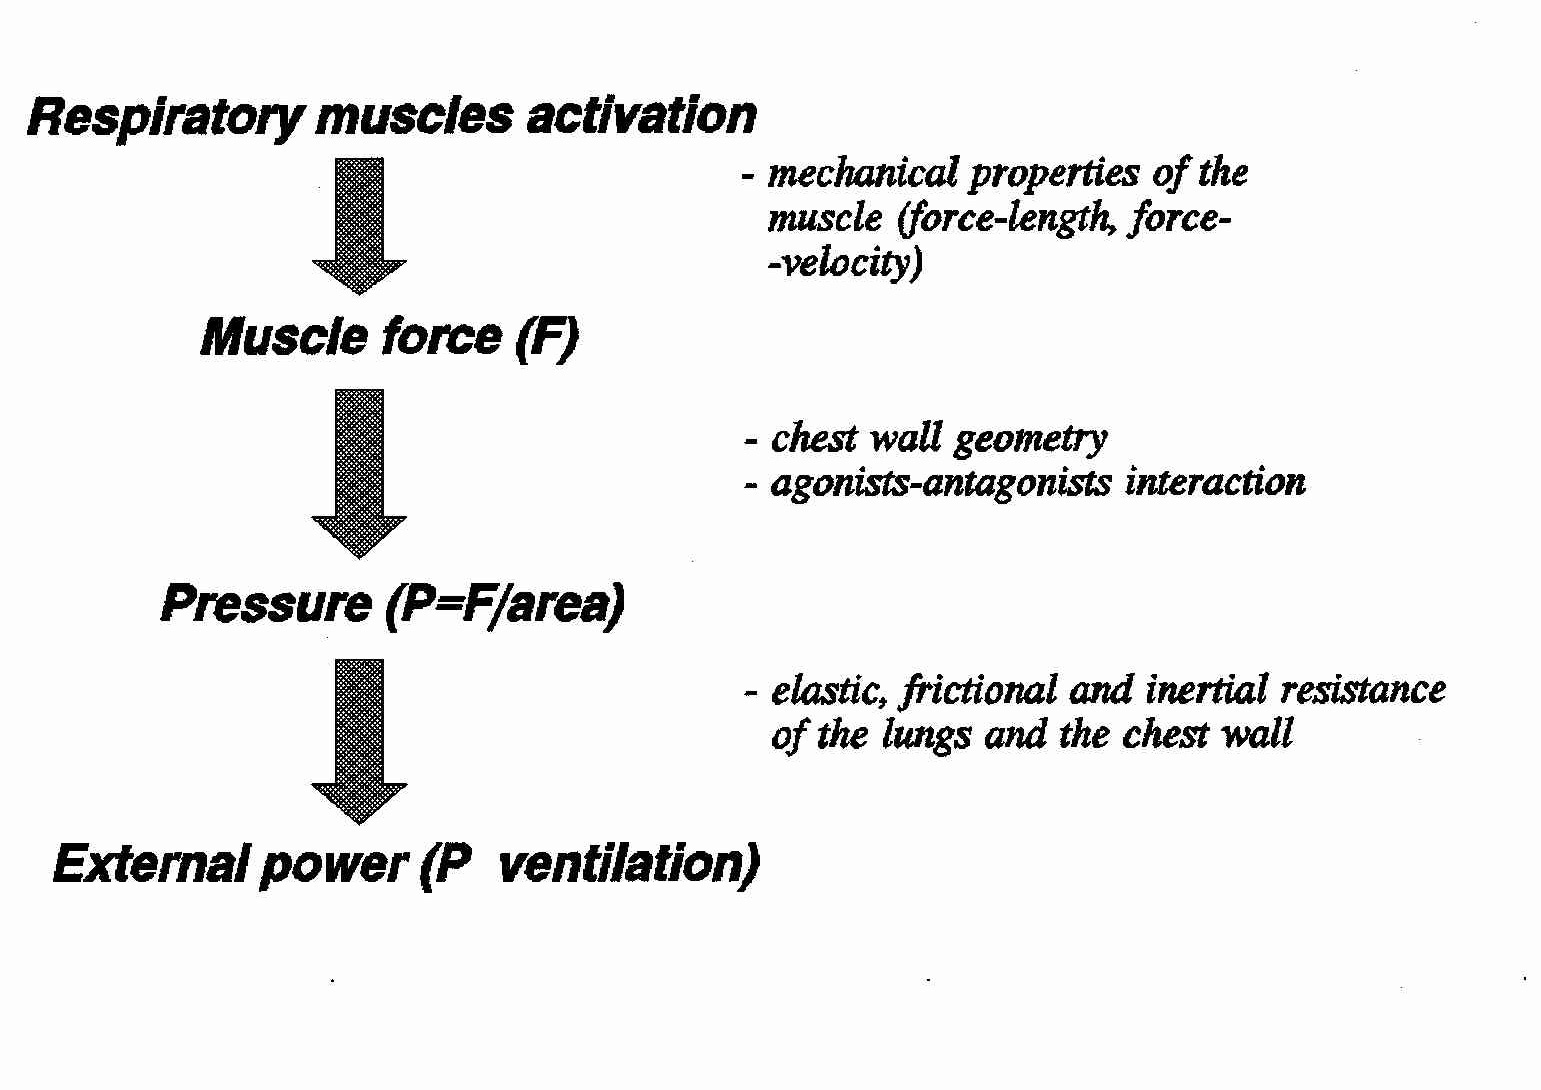 Text3 Air Resistance Diagram Free Body Movies In The Sequence Of Events Translating Muscle Activation Into Ventilation And Factors Involved Each Step